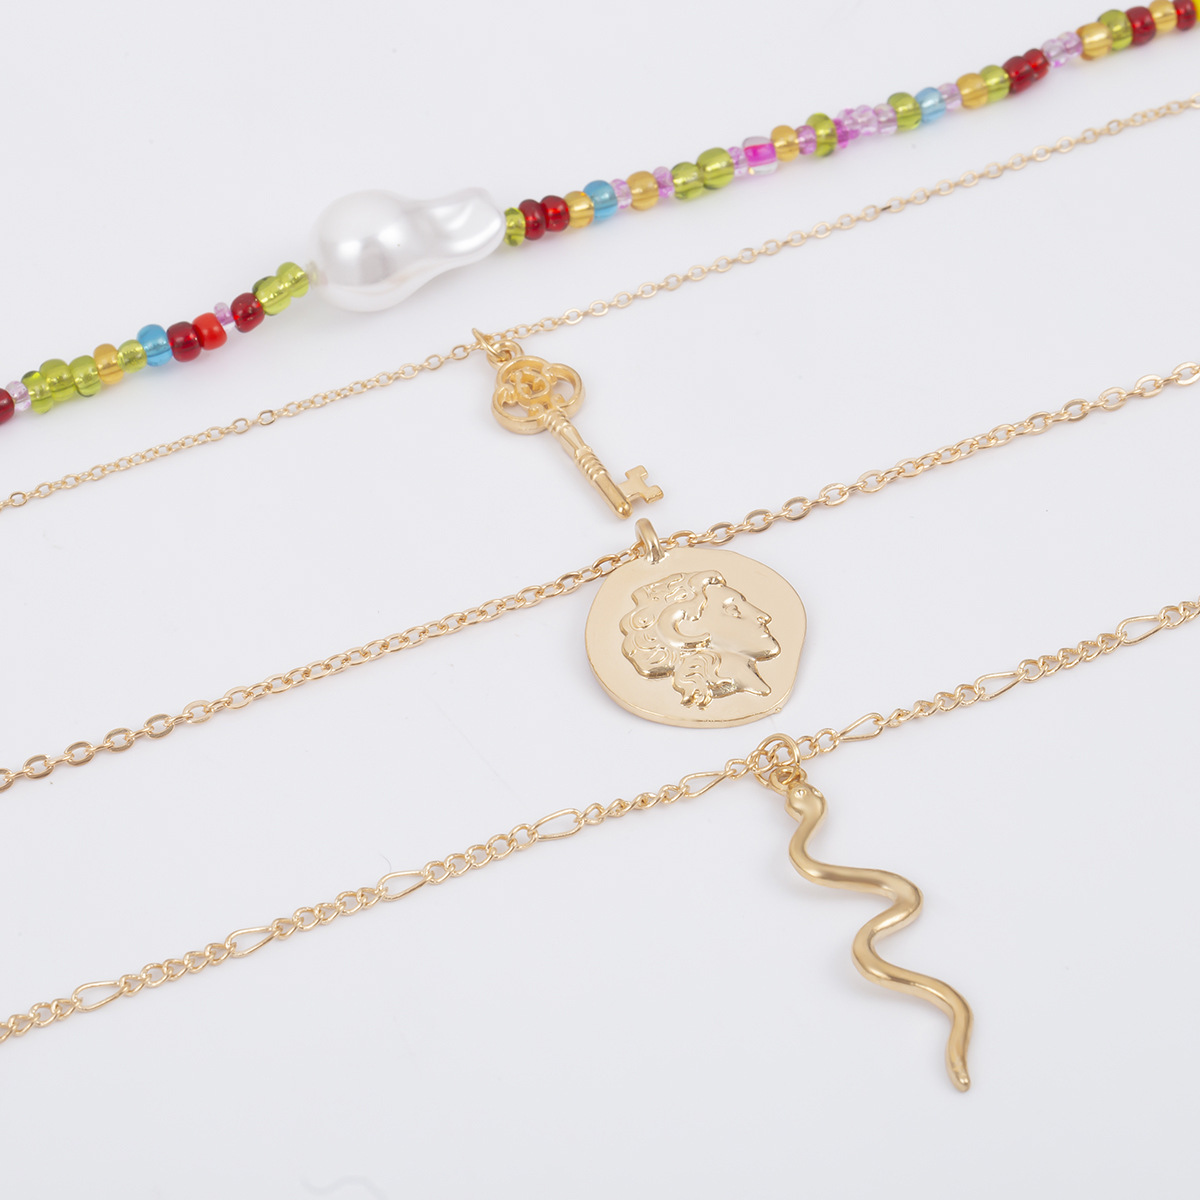 2019 New Cute Gold Color Multilayer Snake Pendant Necklace Female Bohemian Imiation Pearl Beads Choker Necklaces Women Collares in Pendant Necklaces from Jewelry Accessories